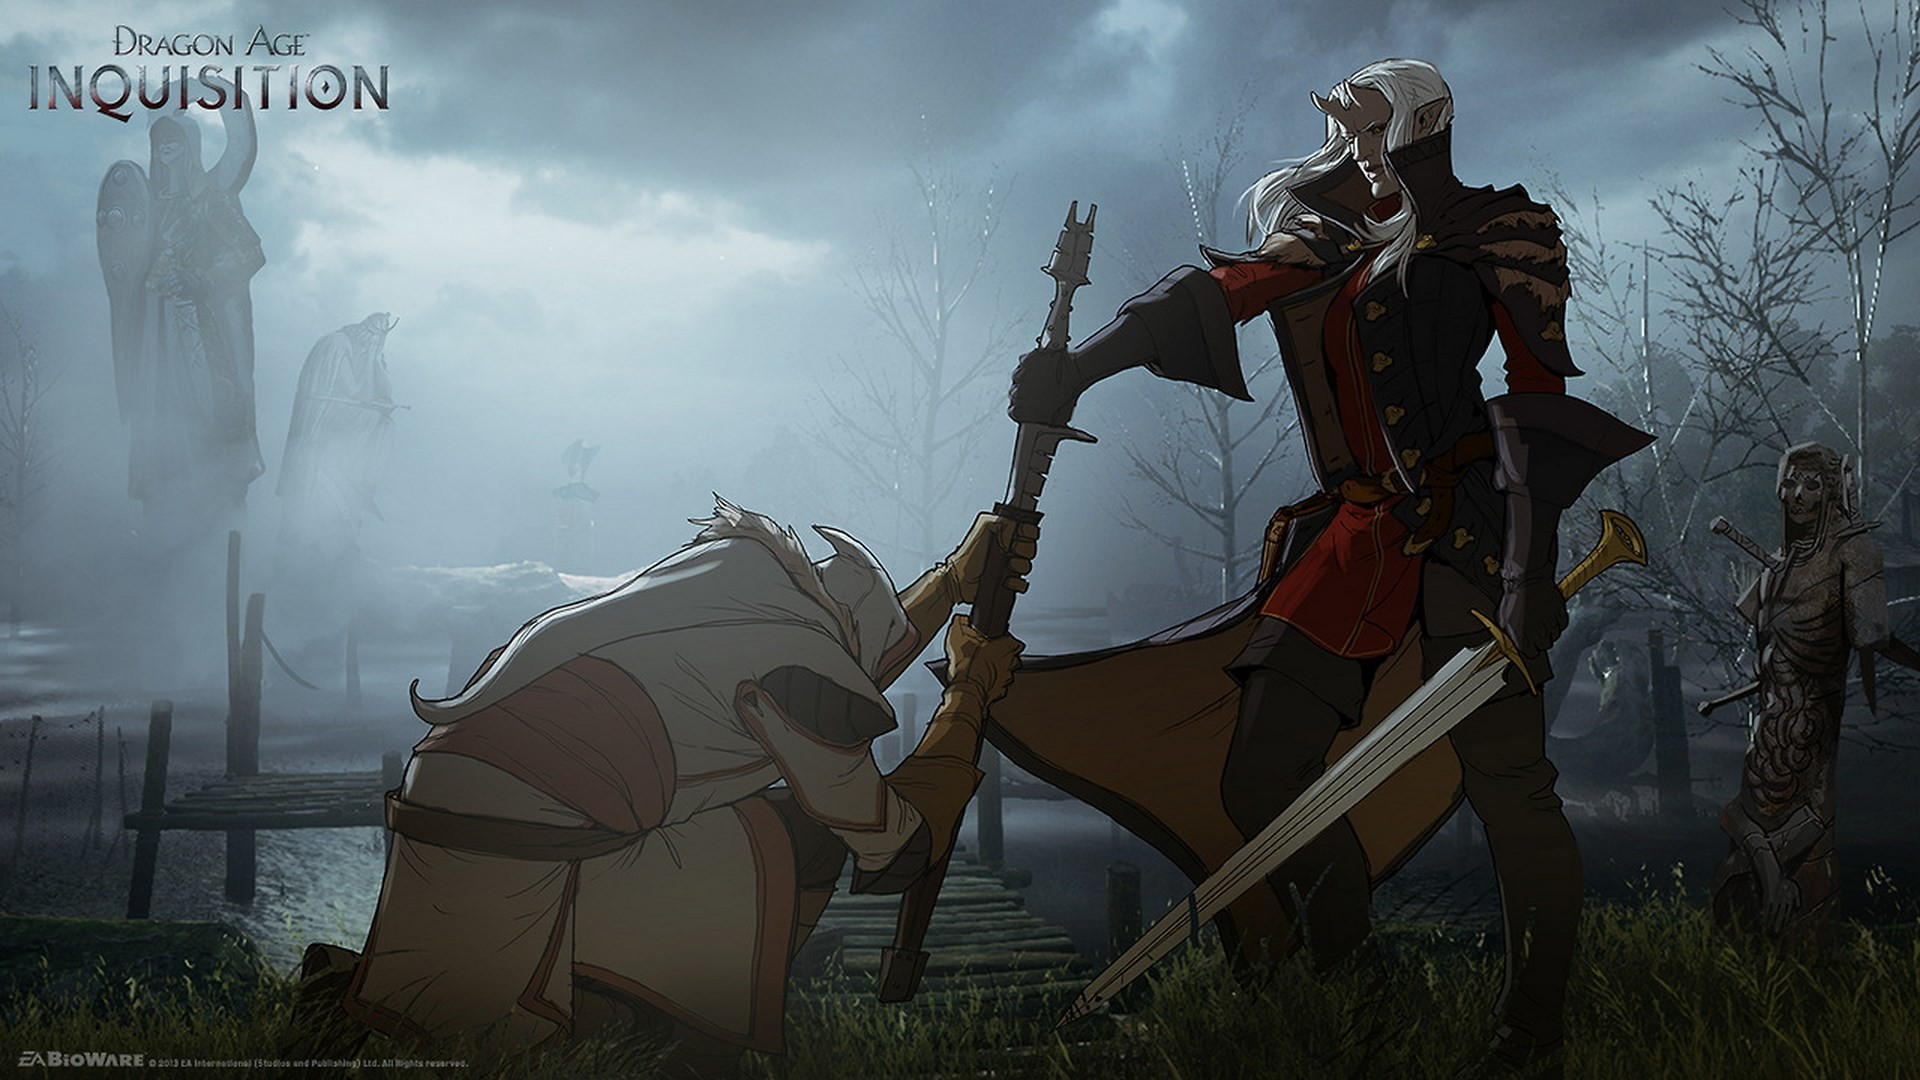 Surrender concept art from the video game Dragon Age: Inquisition by Matt  Rhodes